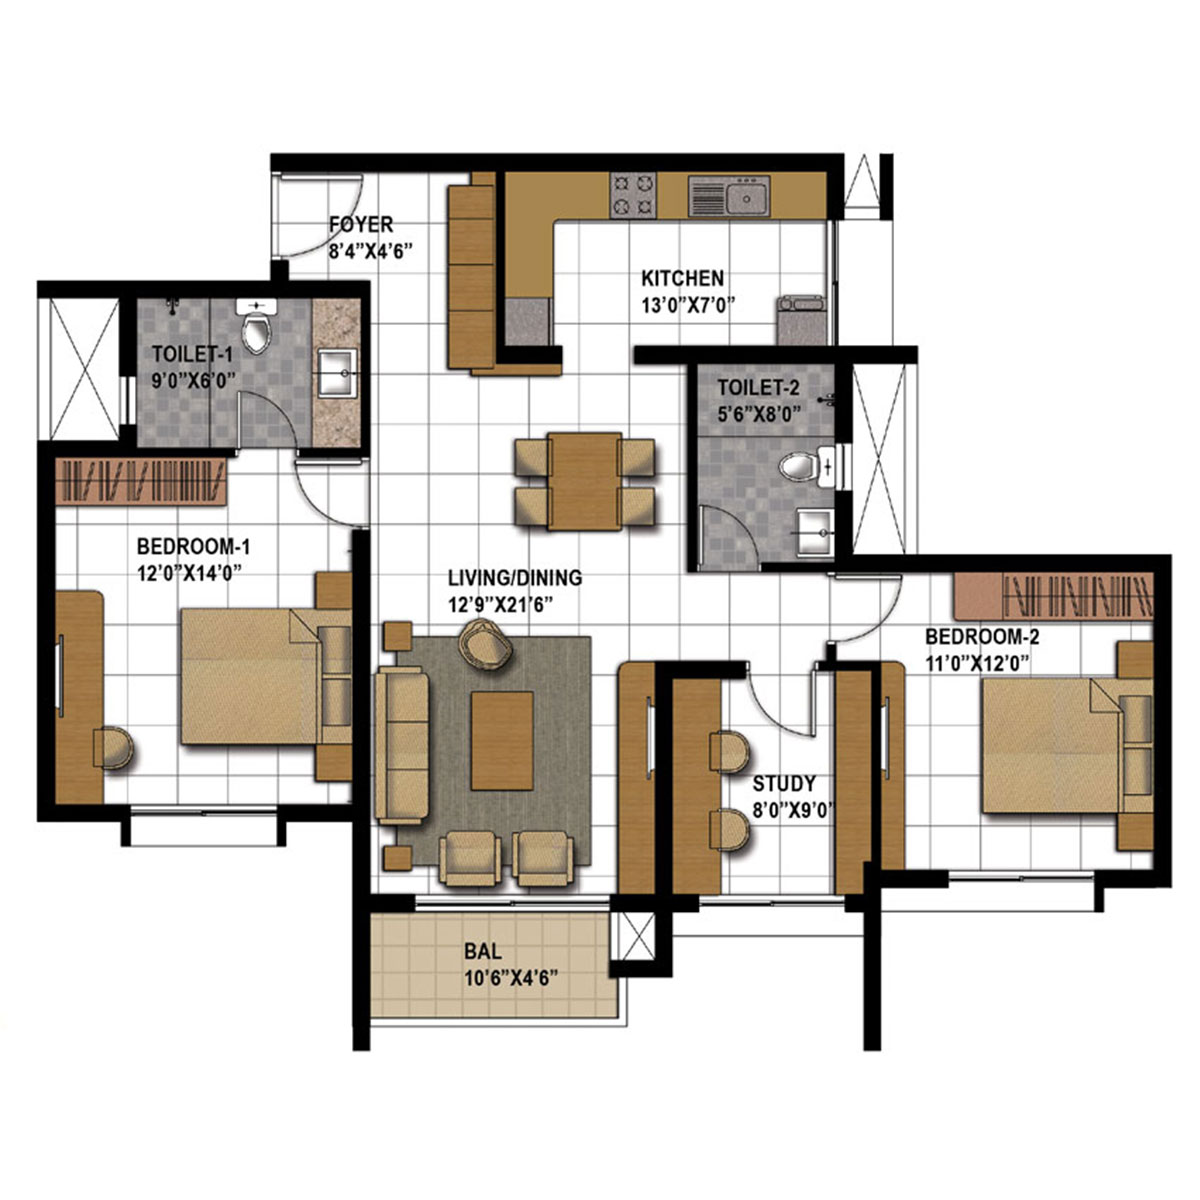 Type K - 2 Bed Study -  1360 Sq Ft